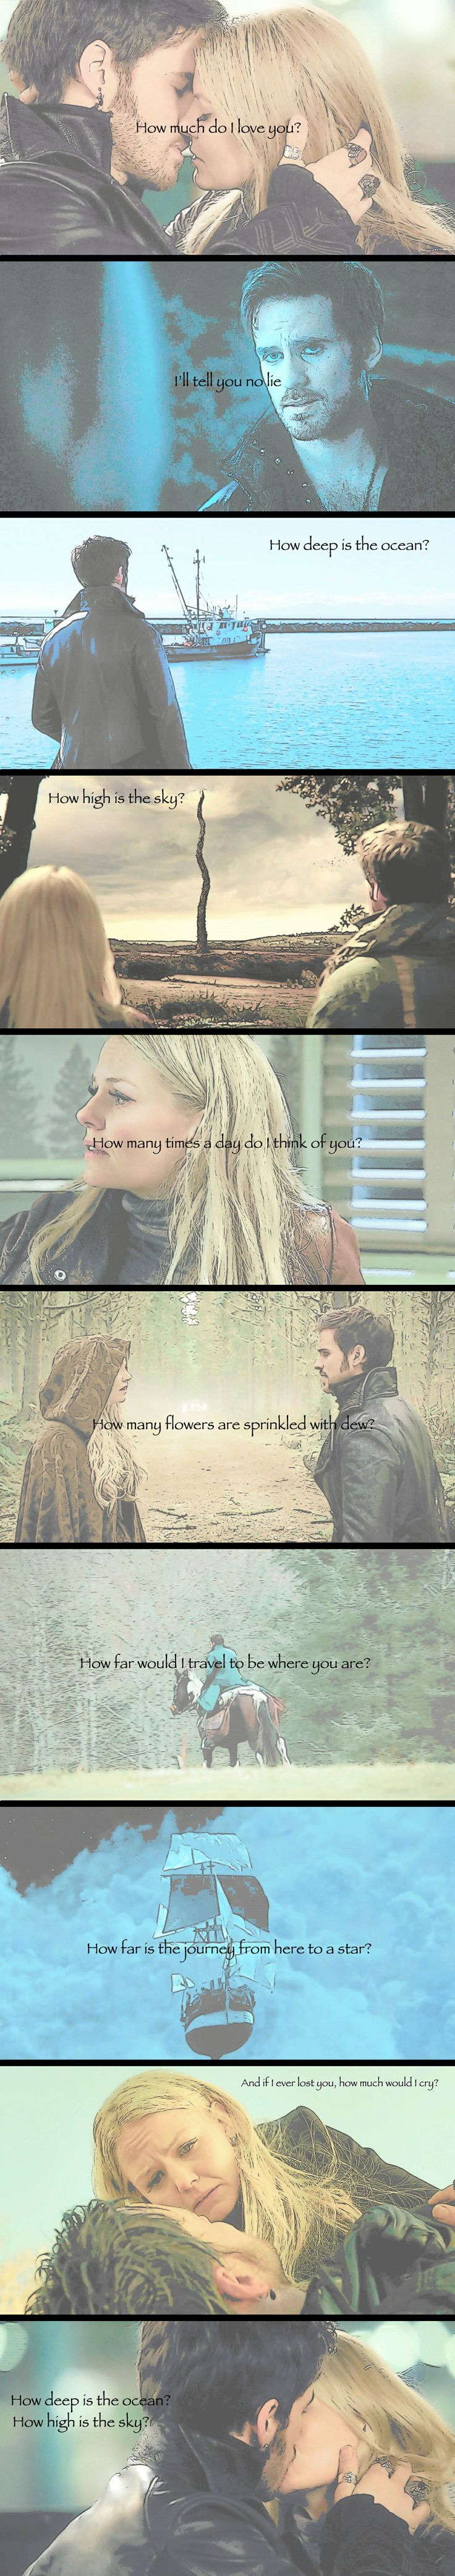 Emma and Killian - How Deep Is The Ocean - these are from my tumblr. I am so flattered somebody pinned them :)<<somebody has a great deal of talent!